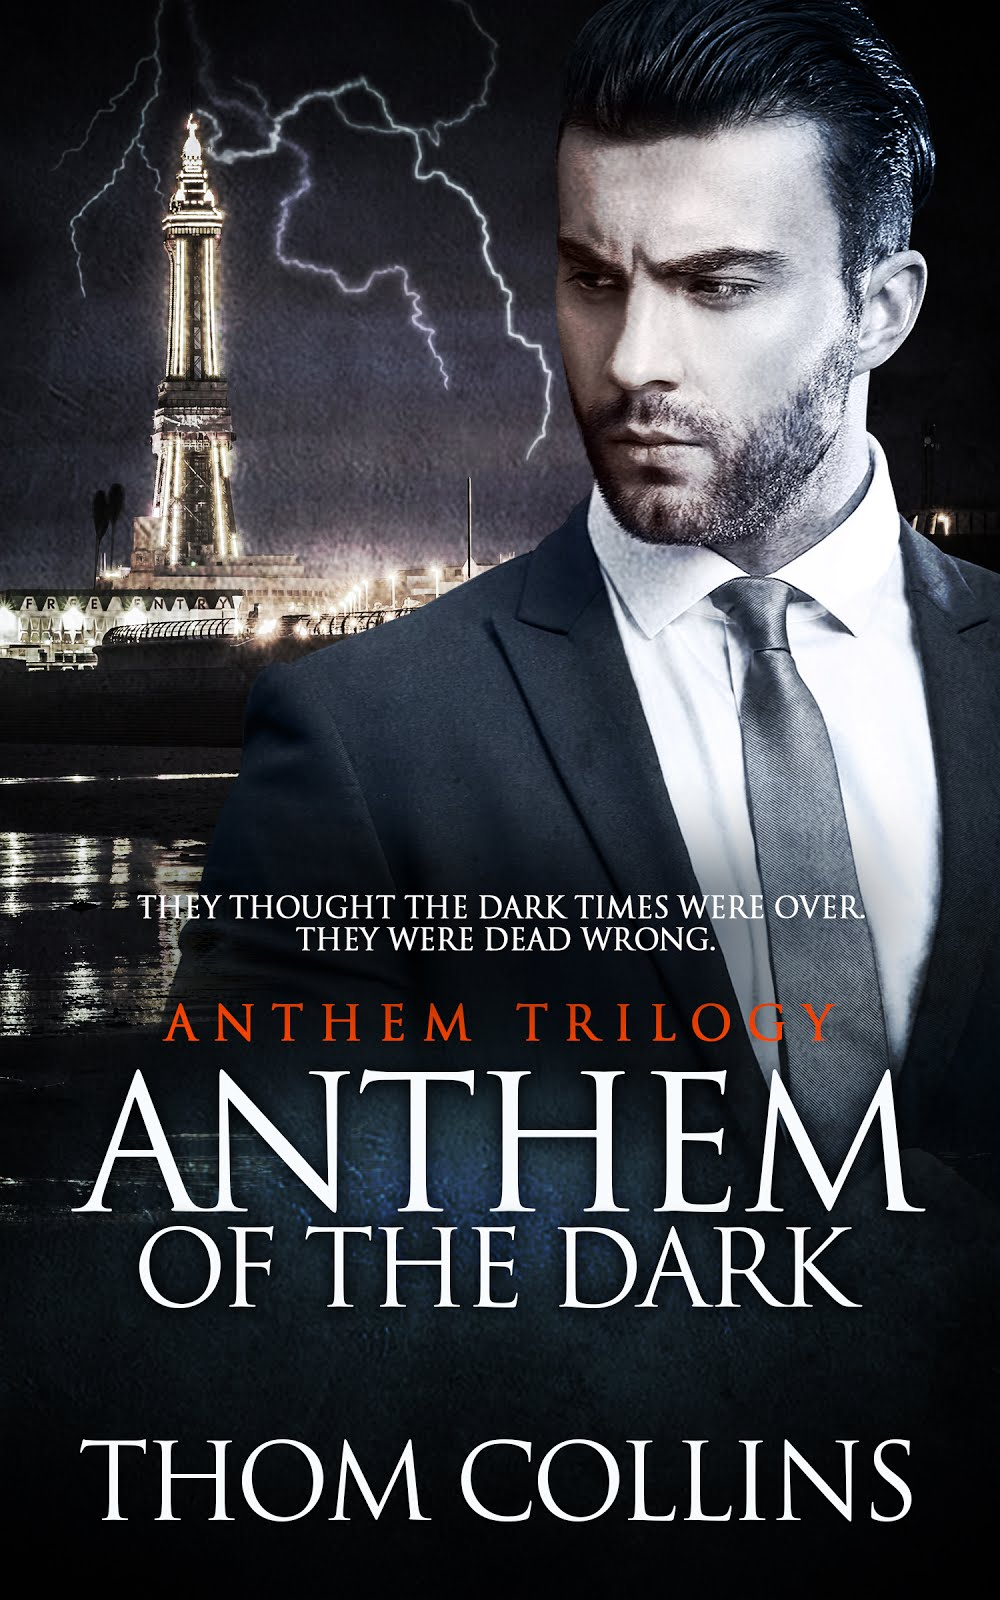 ANTHEM OF THE DARK